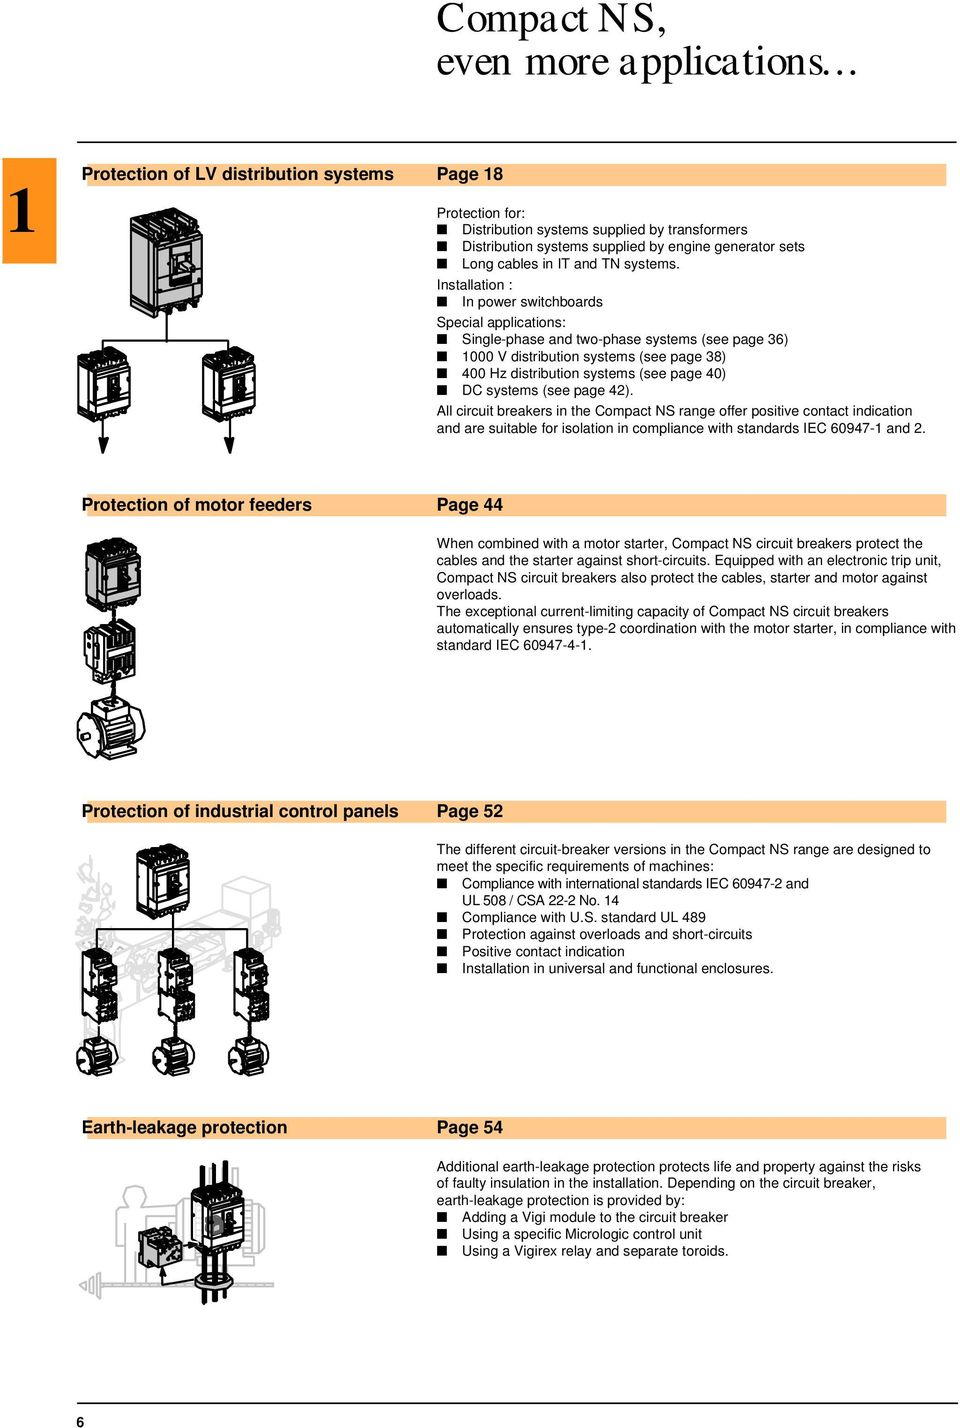 Catalogue Merlin Gerin Compact Lv Circuit Breakers And Switch Breaker Logic In Power Plant Installation Switchboards Special Applications Single Phase Two Systems